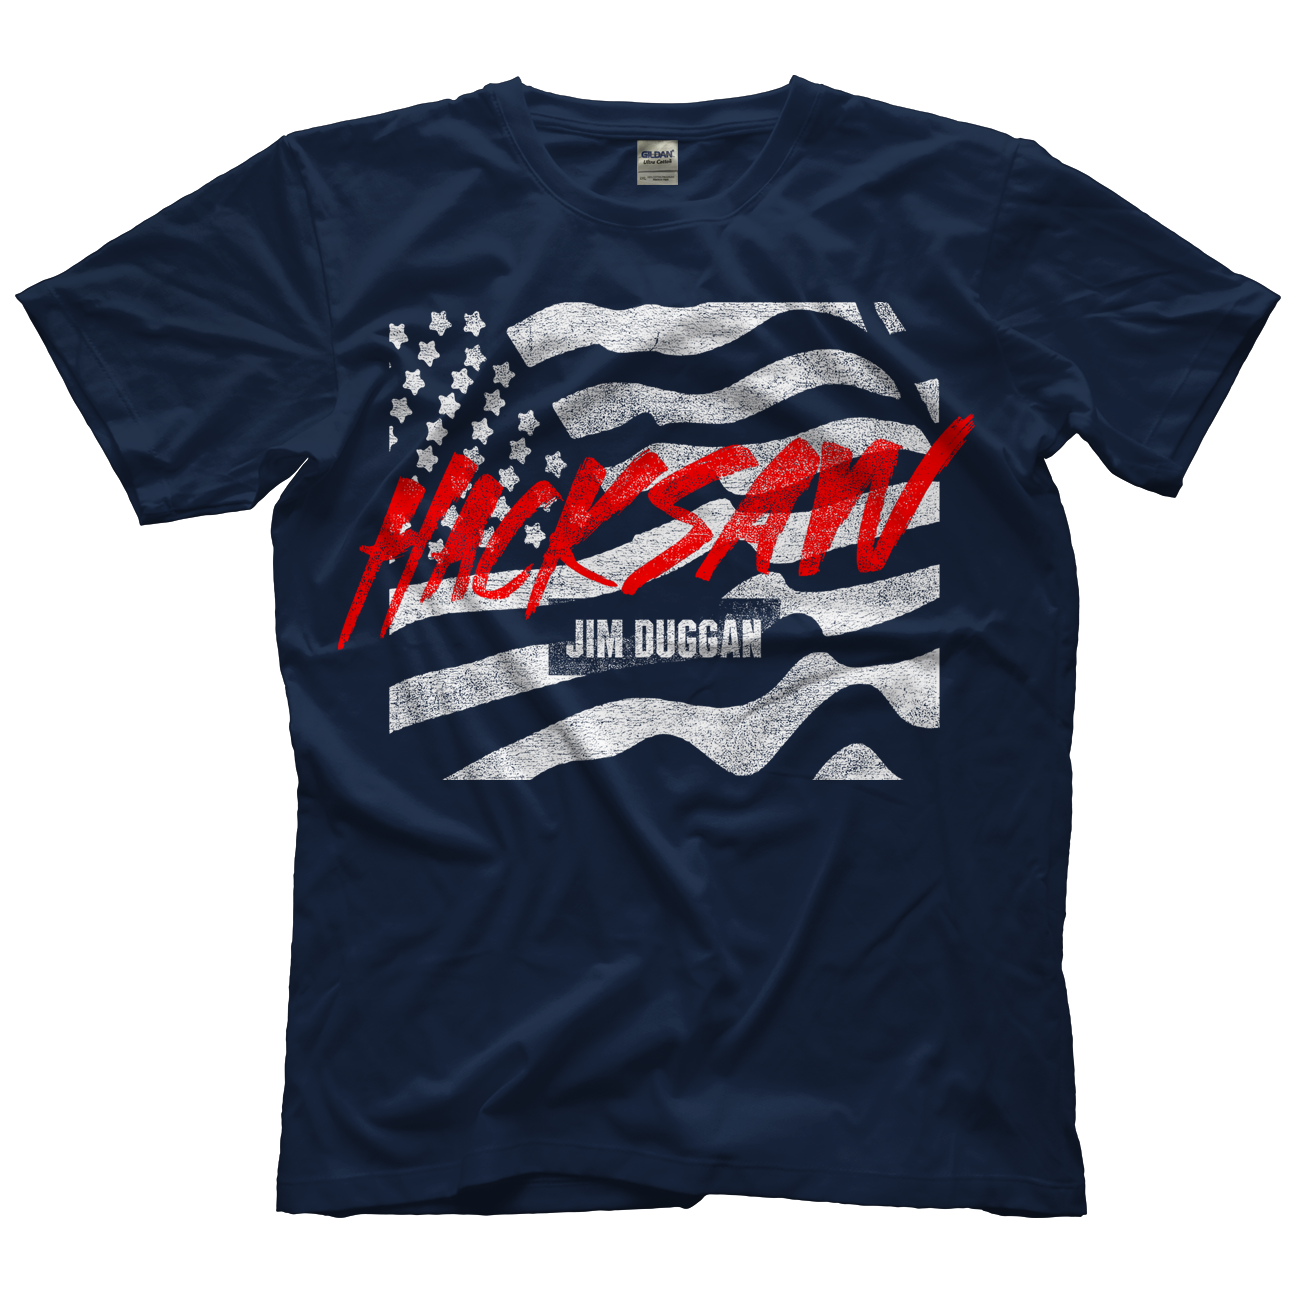 Jim Duggan Hacksaw Flag T-shirt